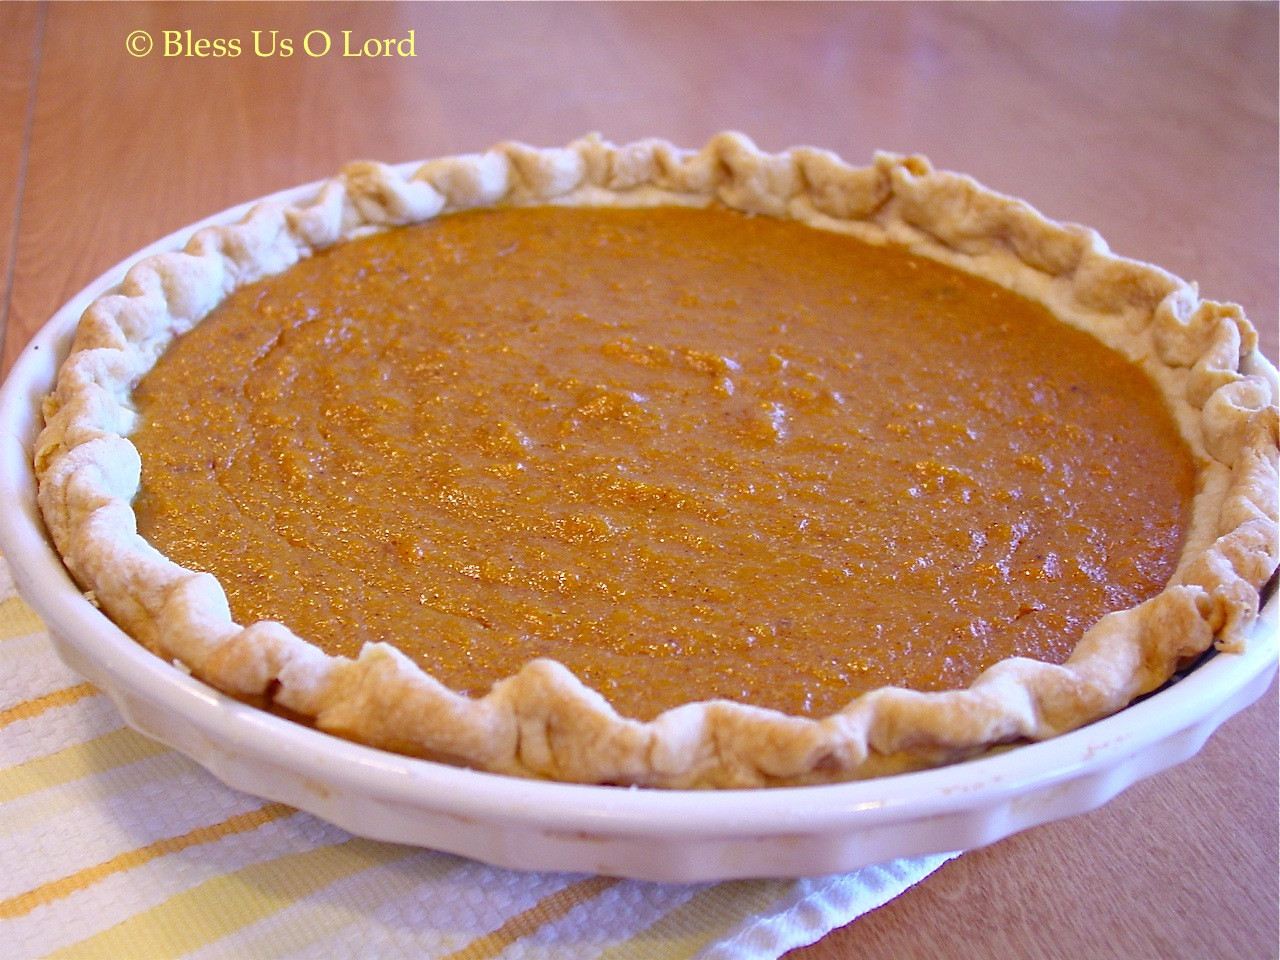 Sweet Potato Pie Recipe Paula Deen Sweet potato pie 6-8 pieces